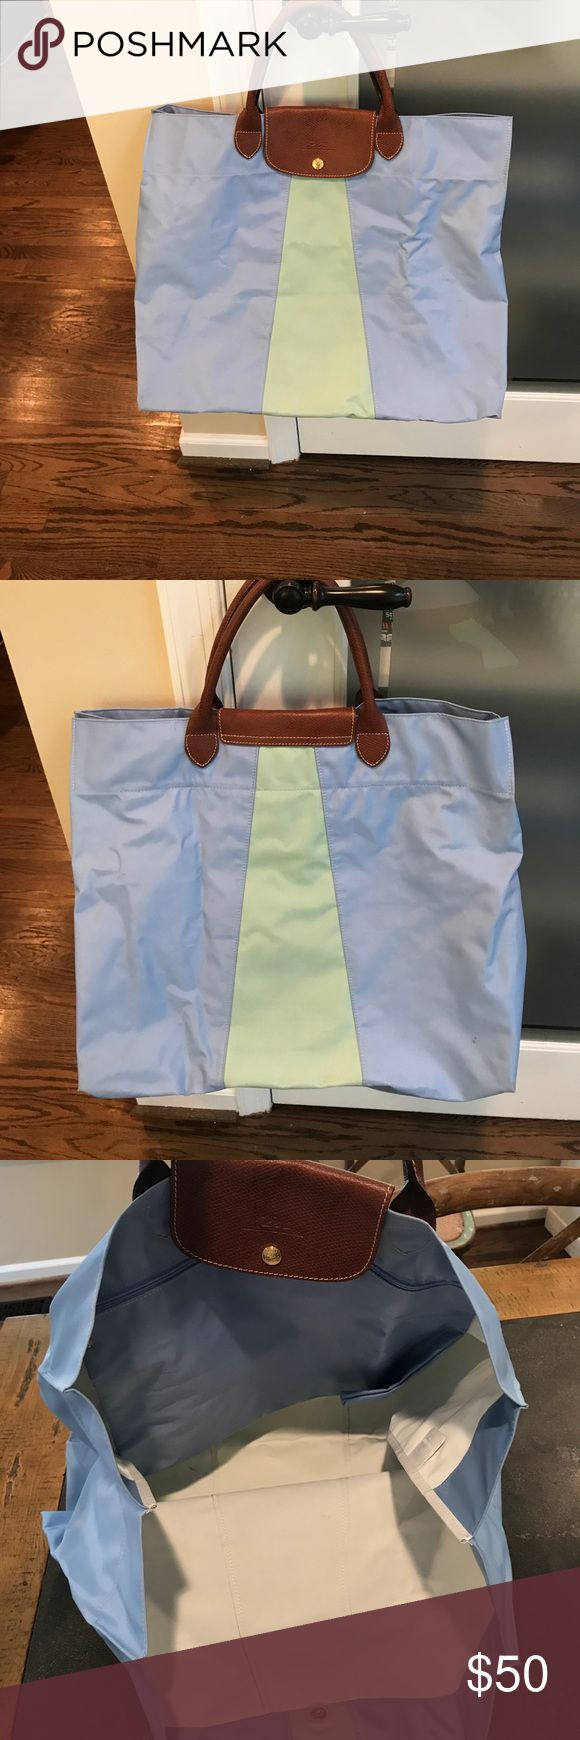 "Long champ Pliage Tote!! 👜 Great ""throw-all in"" tote perfect for work, school or being a mom!! Gently used and has a few marks on the interior. Has a big inside zip compartment! 15"" tall, 19"" wide, 11"" base. This bag is a must!!! Longchamp Bags Totes"